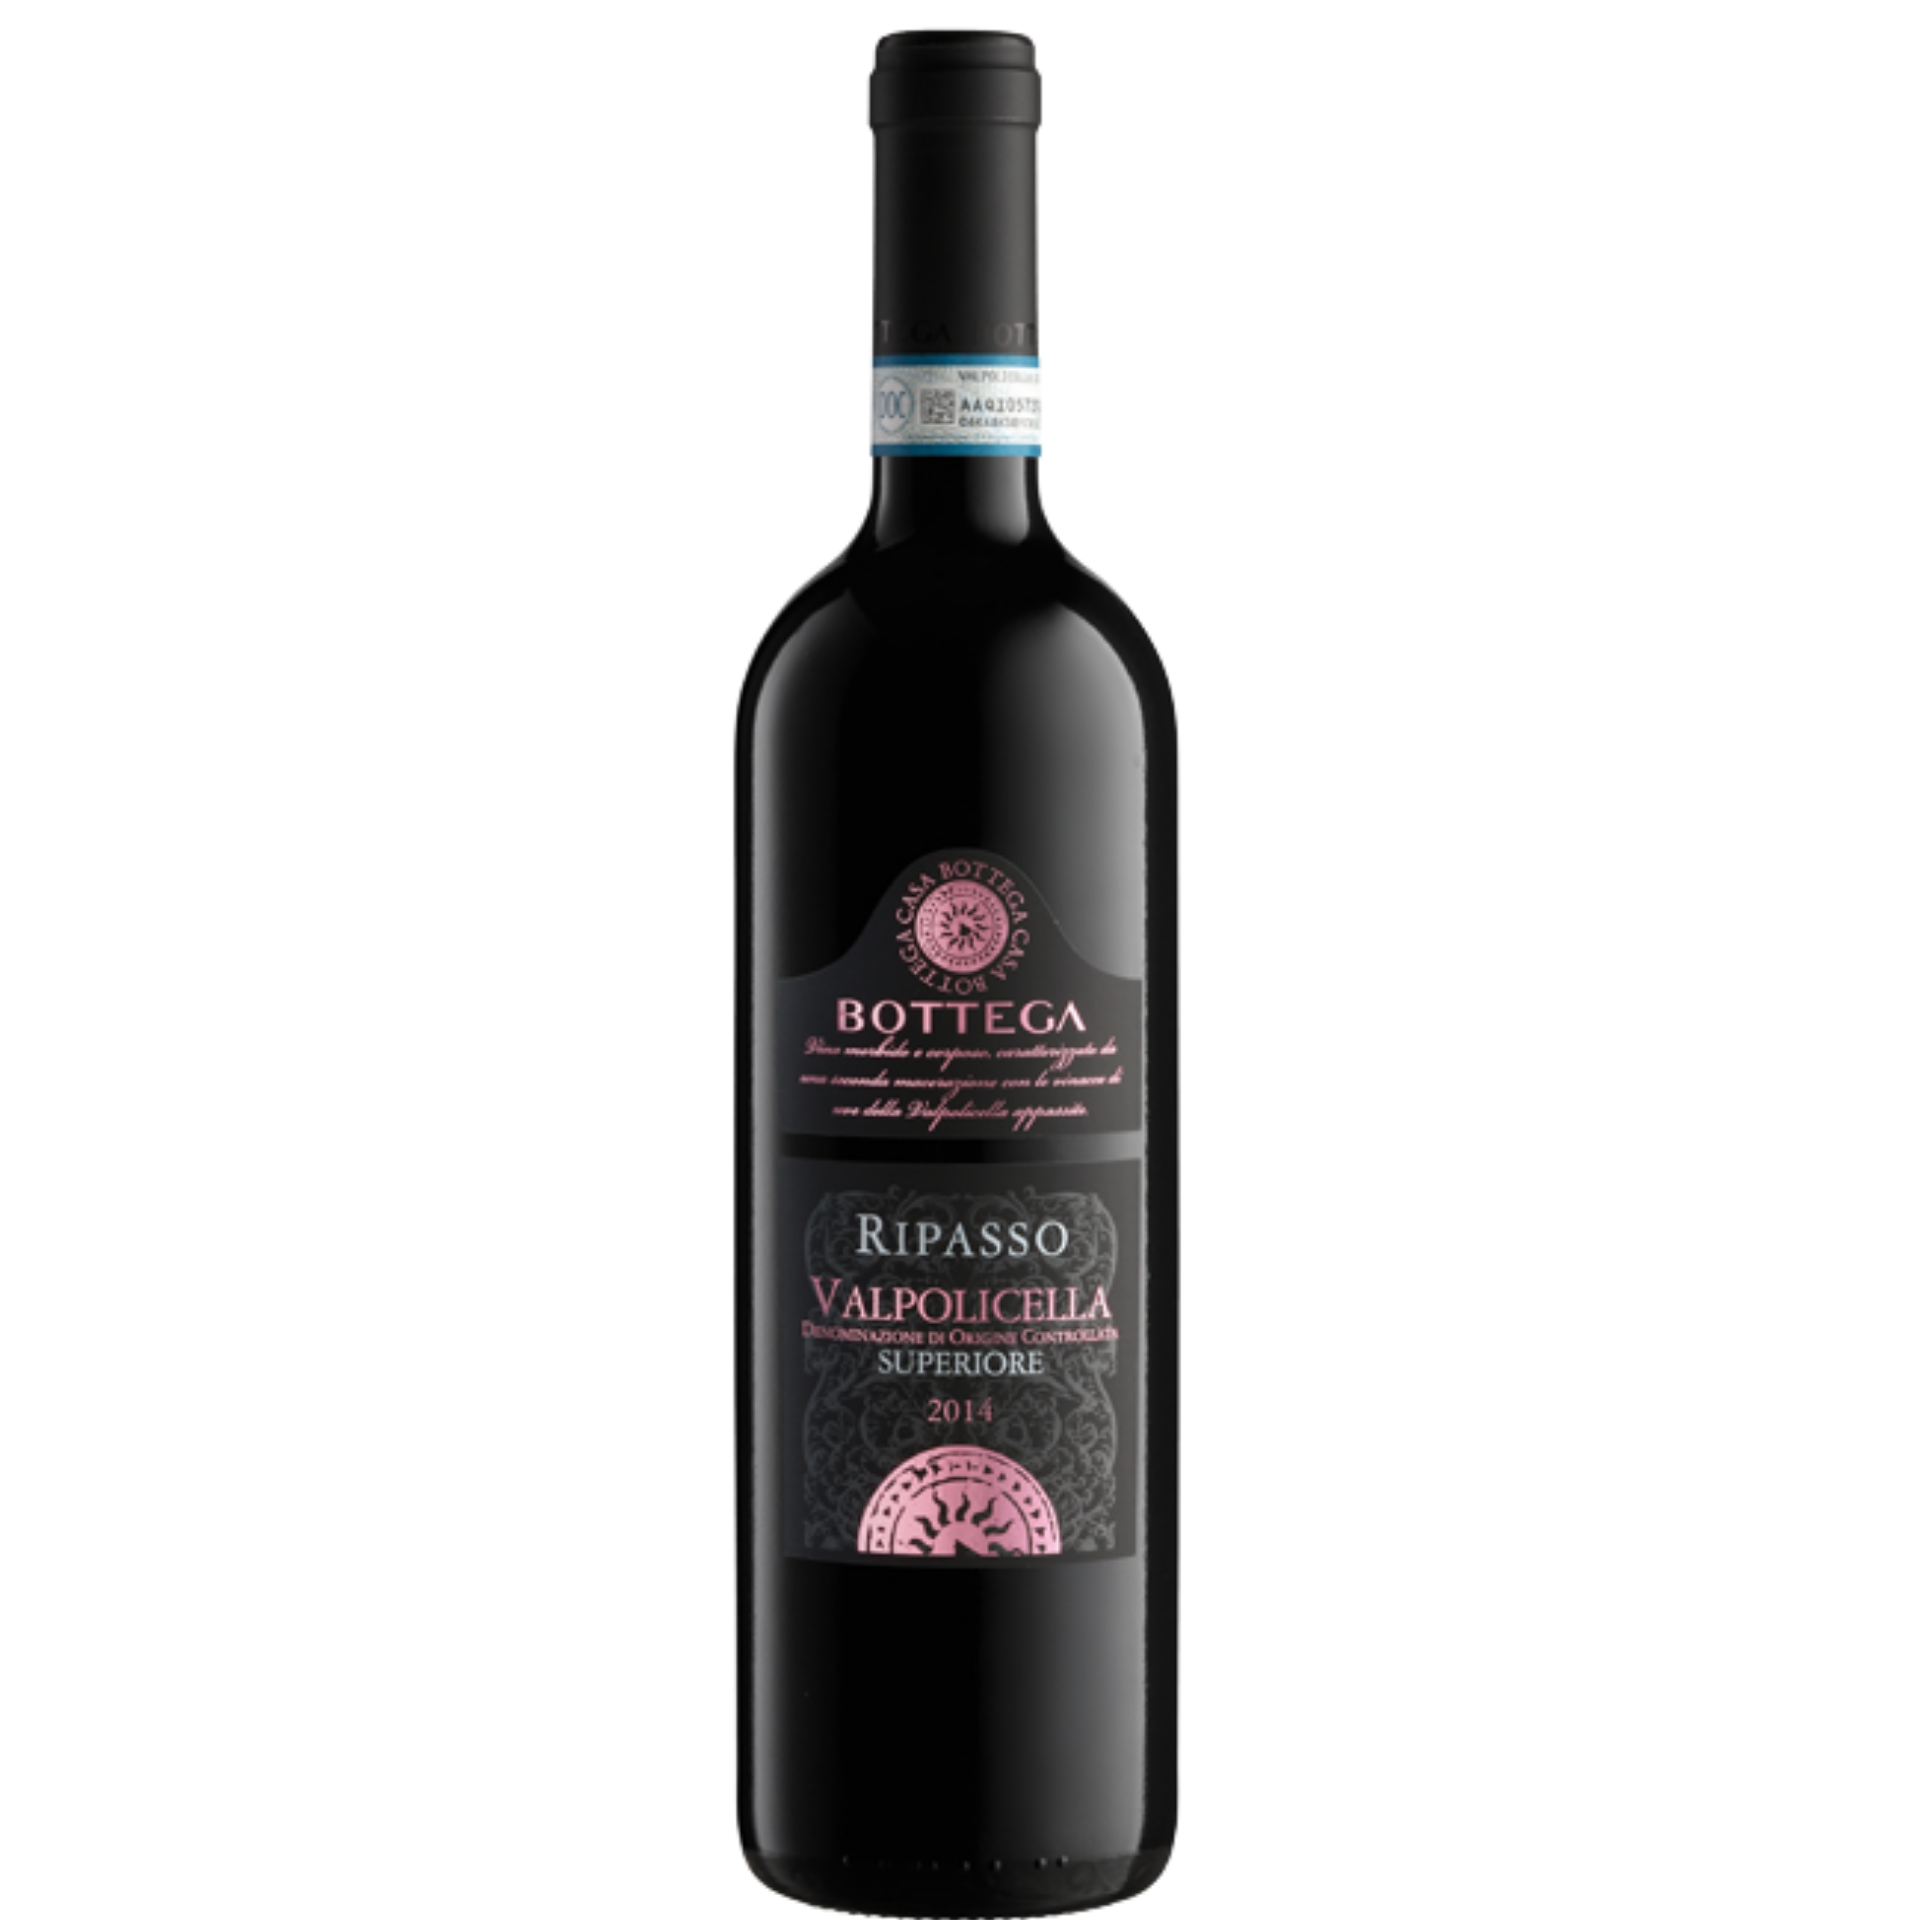 Bottega Ripasso Valpolicella Superiore DOC 2017 750ml